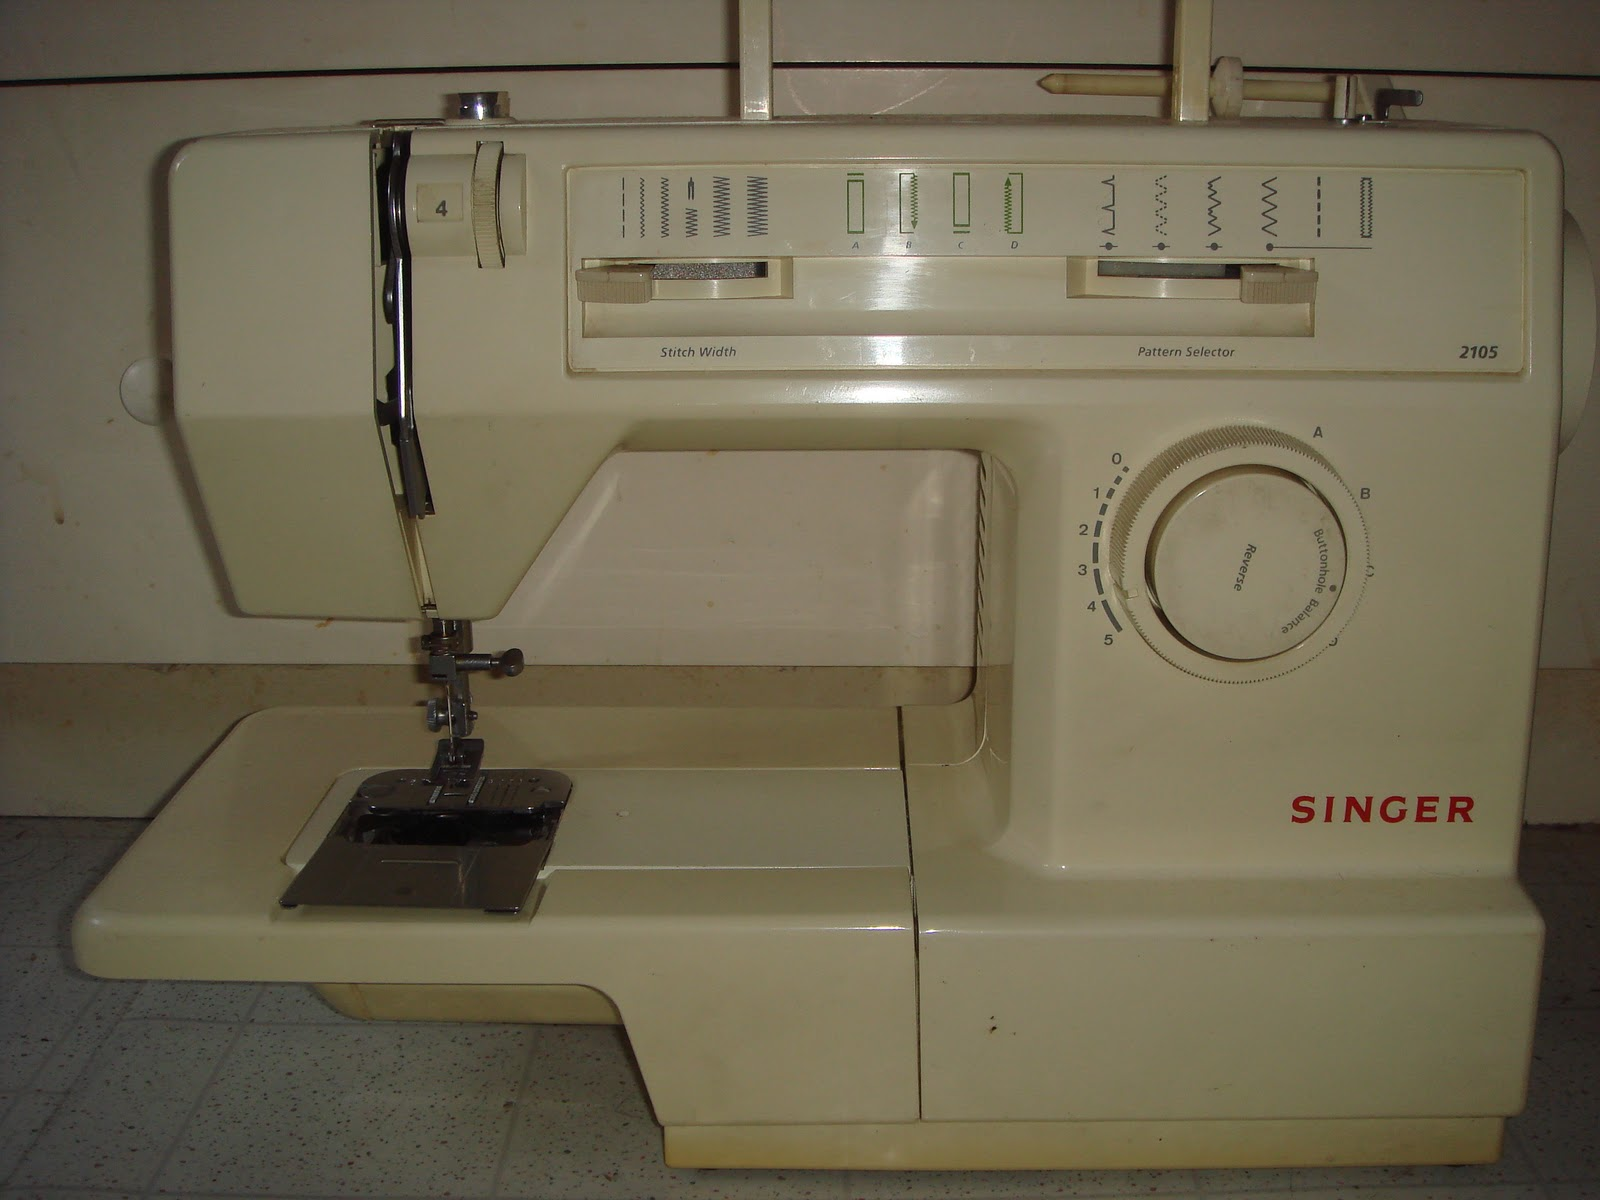 A ricambi singer 2105 for Ricambi singer